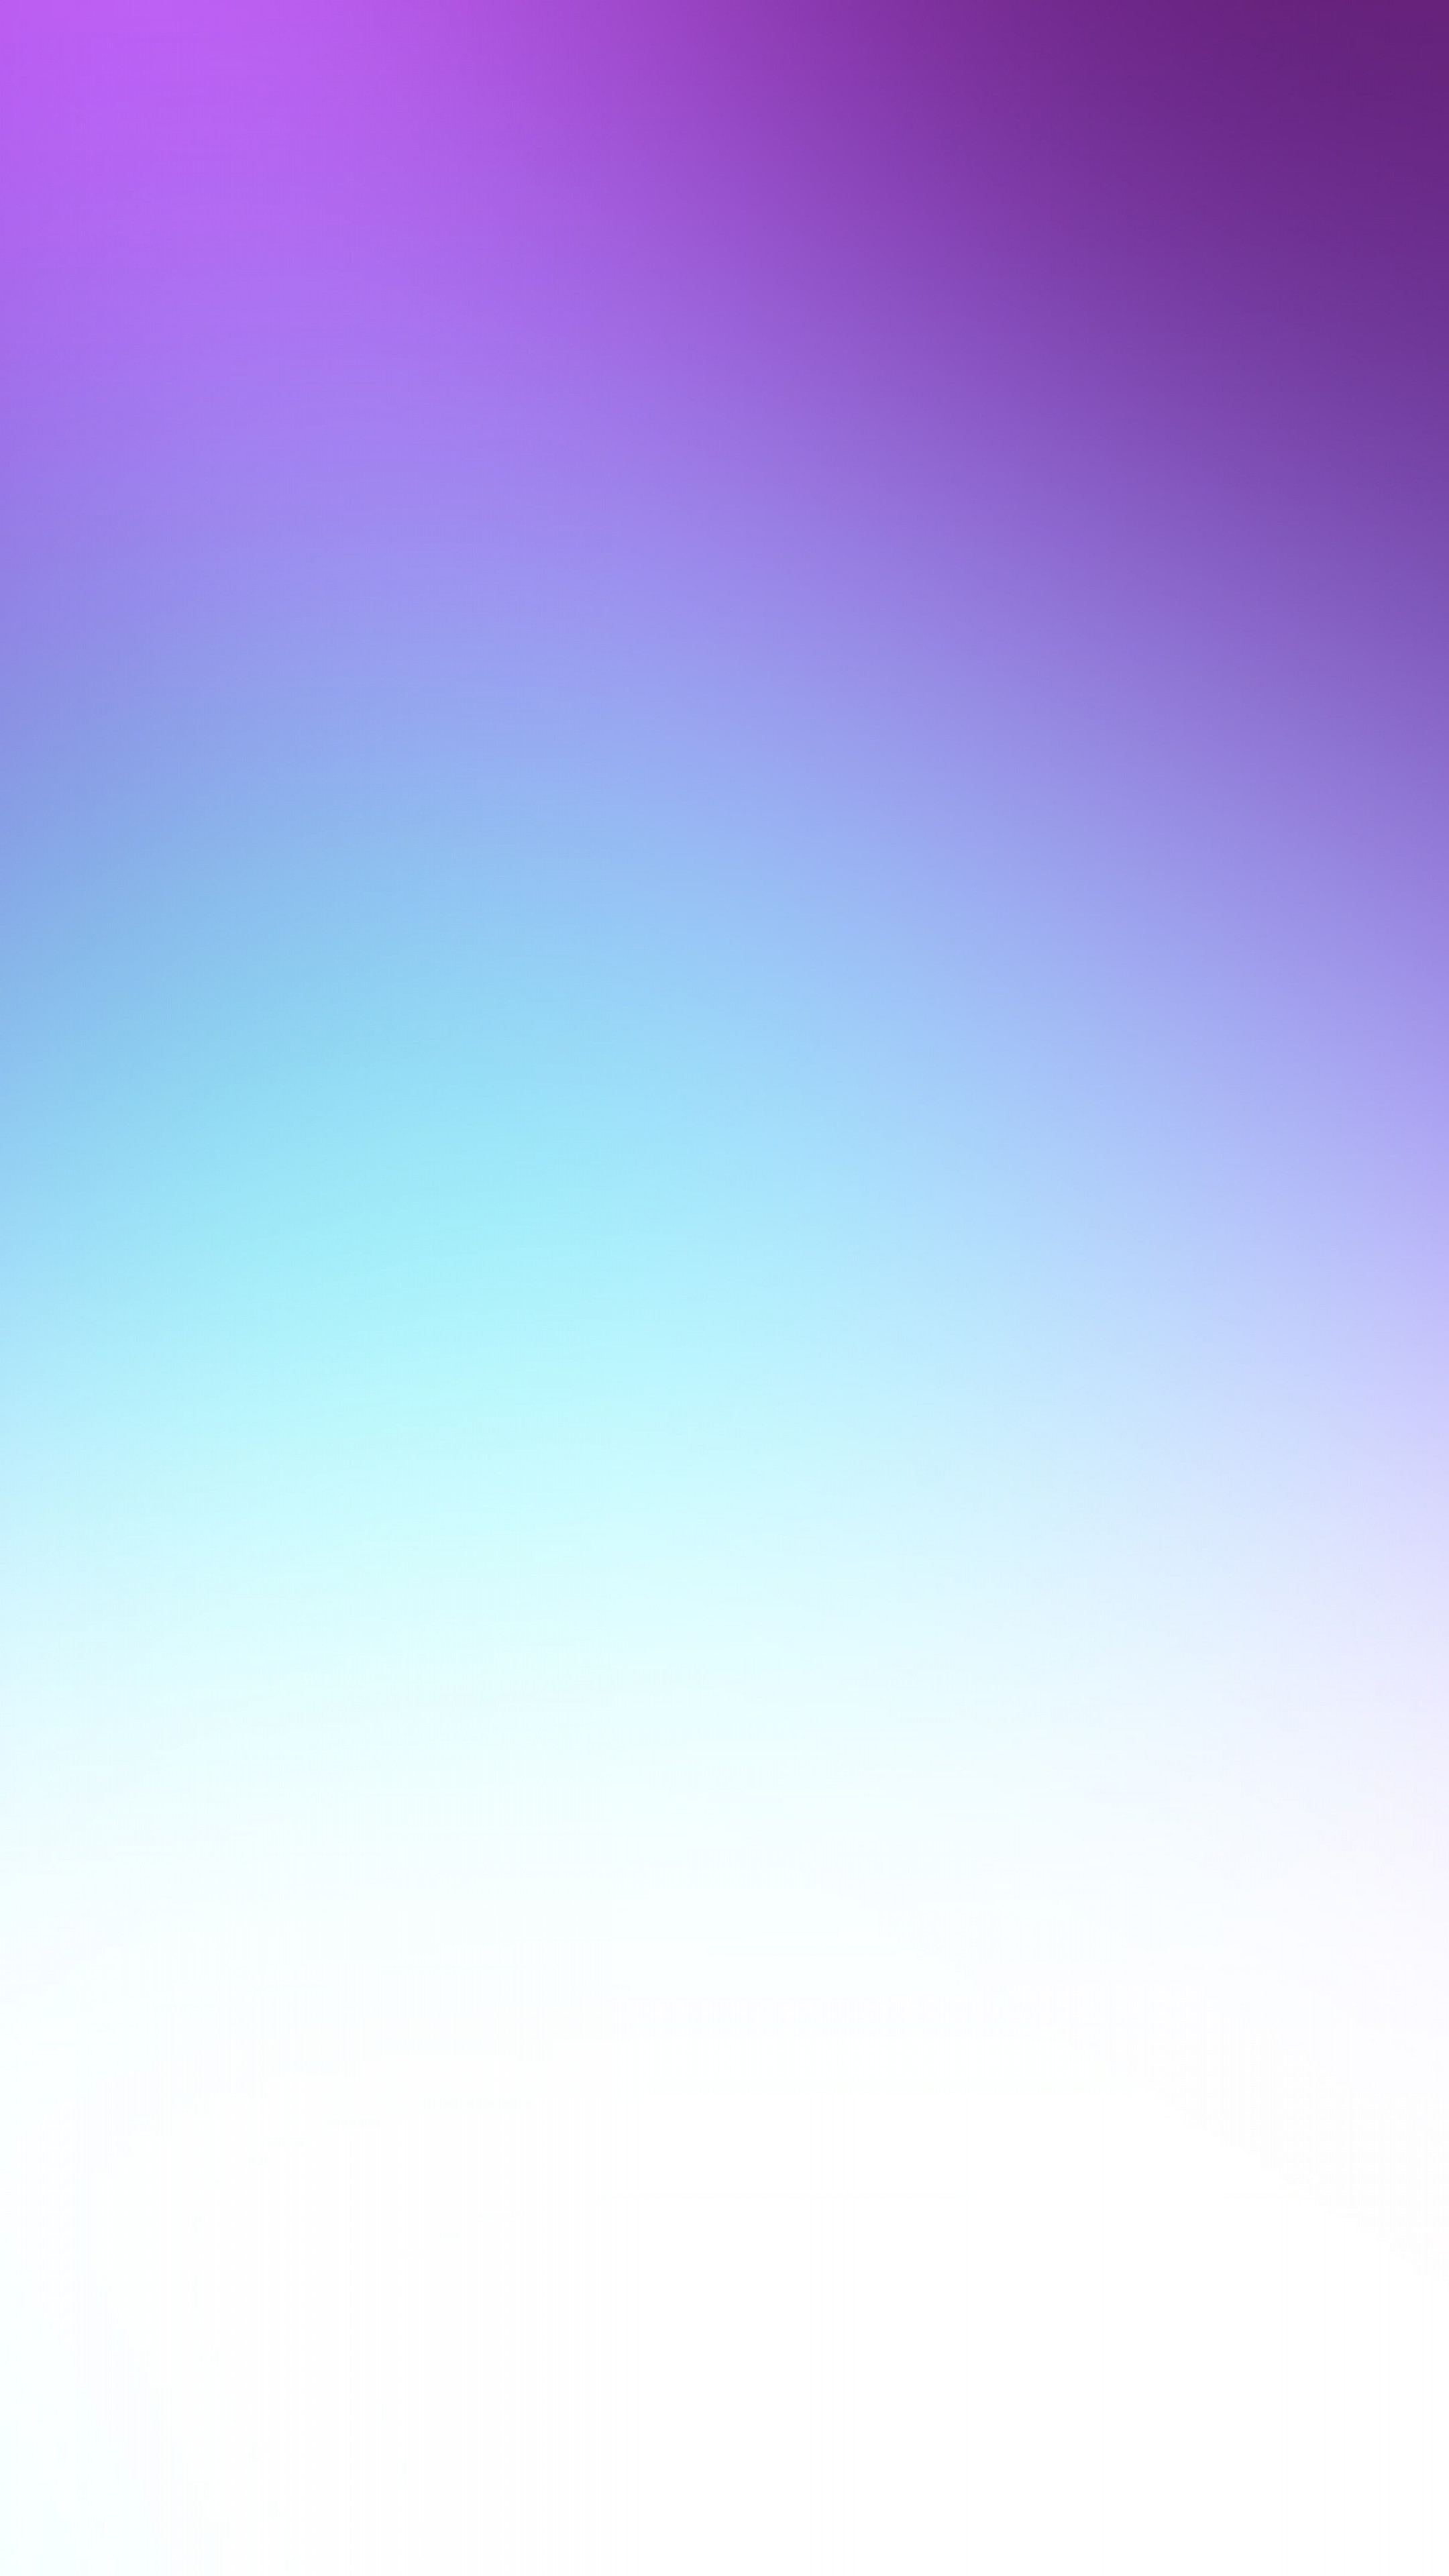 Purple And White Backgrounds (53+ Images